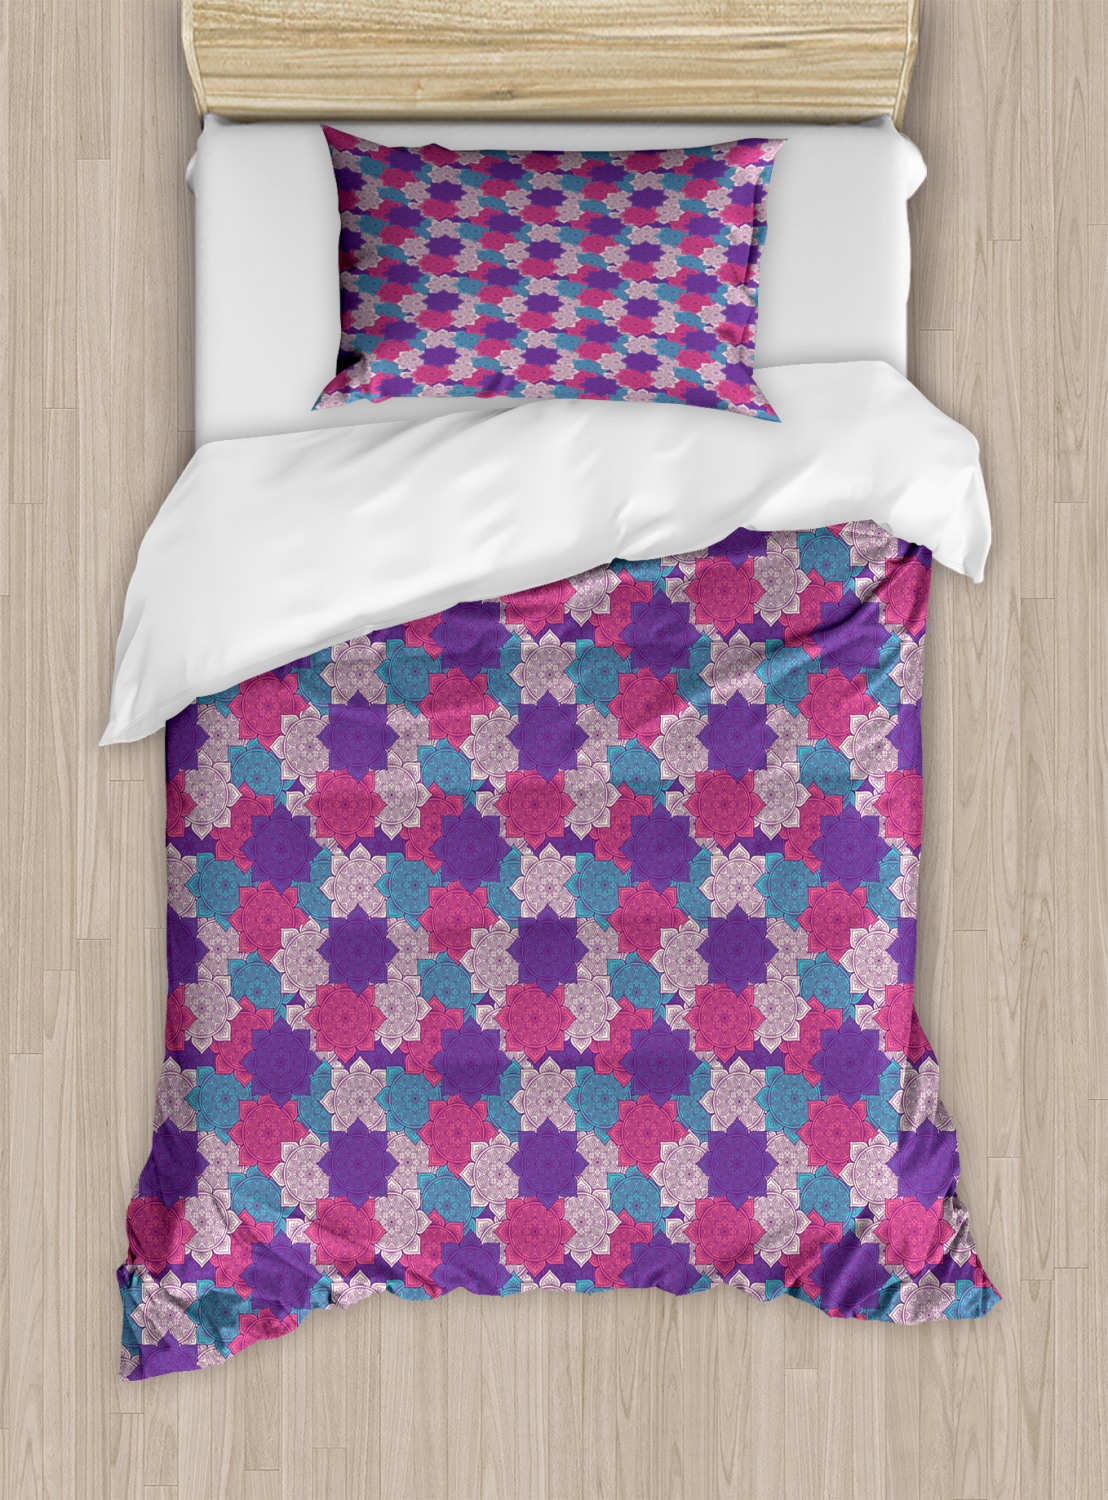 Timeless-Oriental-Duvet-Cover-Set-Twin-Queen-King-Sizes-with-Pillow-Shams thumbnail 70